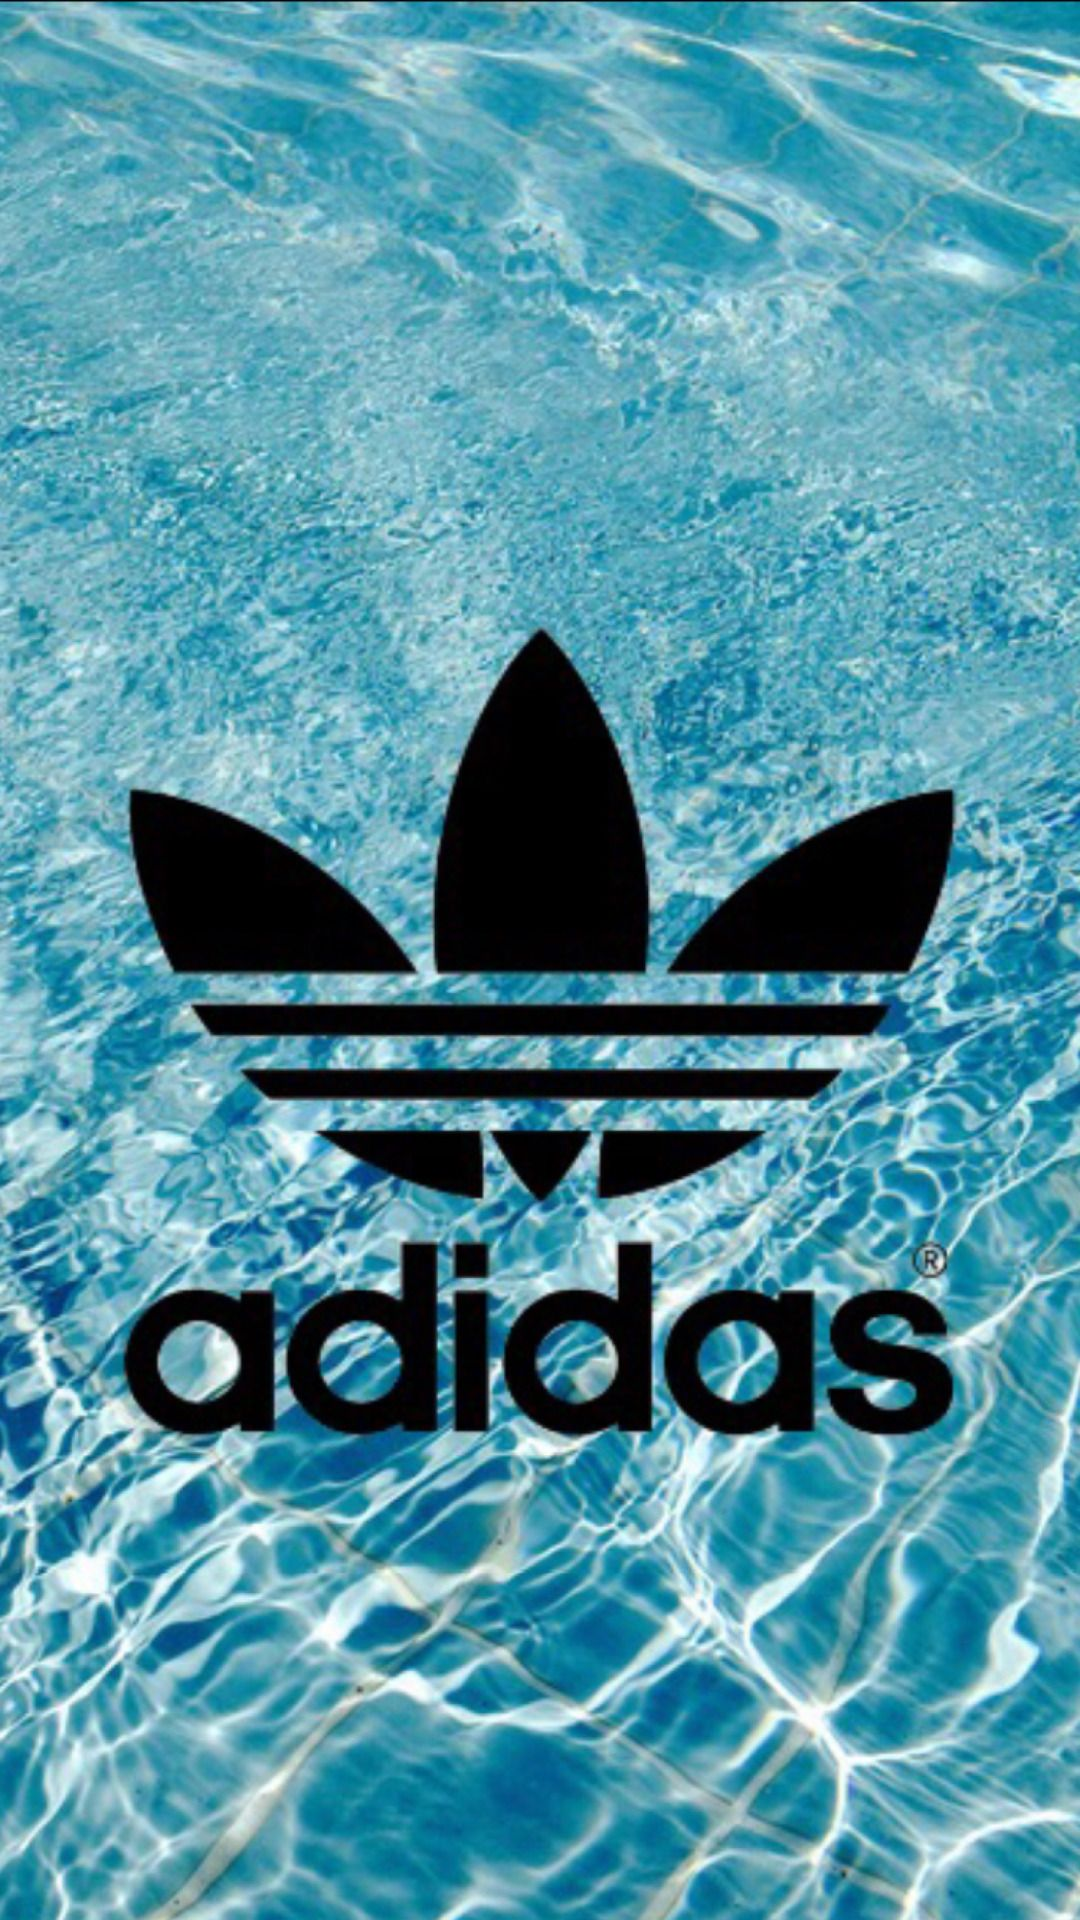 Iphone Wallpapers Iphone 6 Adidas Wallpaper Adidas Wallpaper Iphone Adidas Wallpapers Adidas Backgrounds